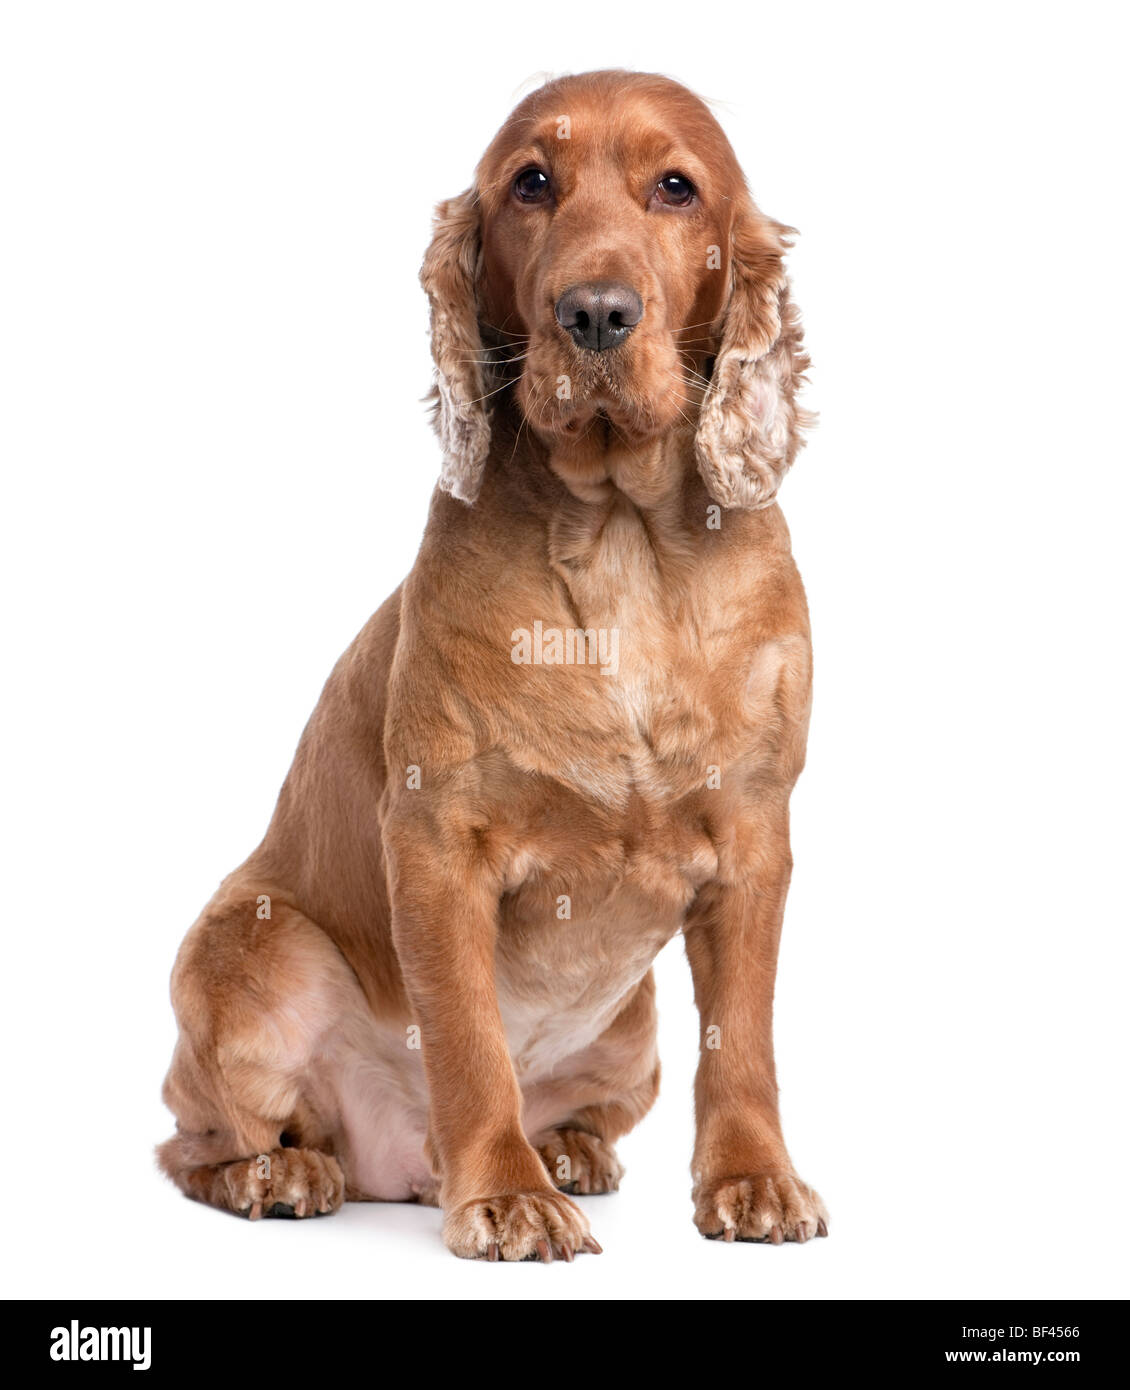 Cocker Spaniel, 3 years old, sitting in front of a white background, studio shot - Stock Image